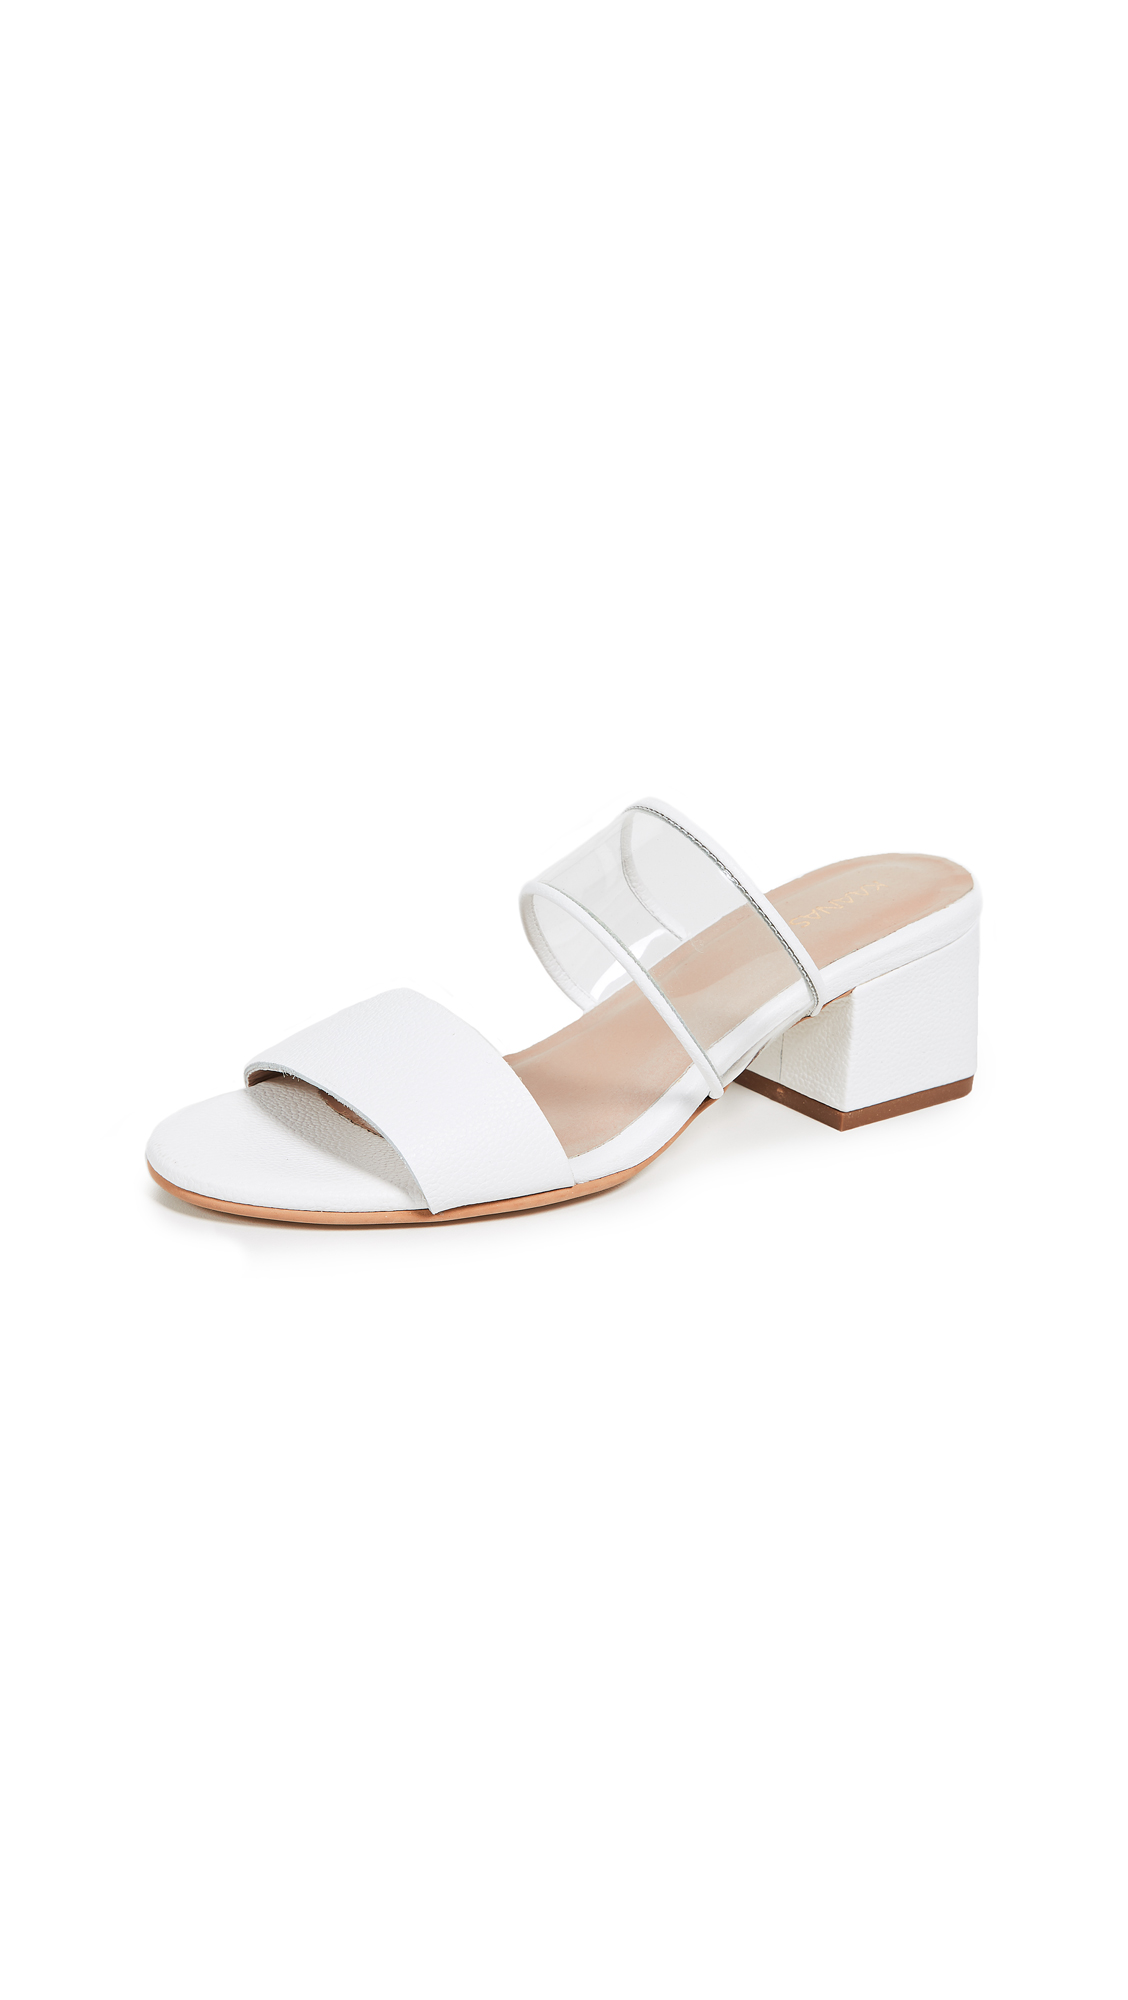 KAANAS Malta Double Band City Slides - White